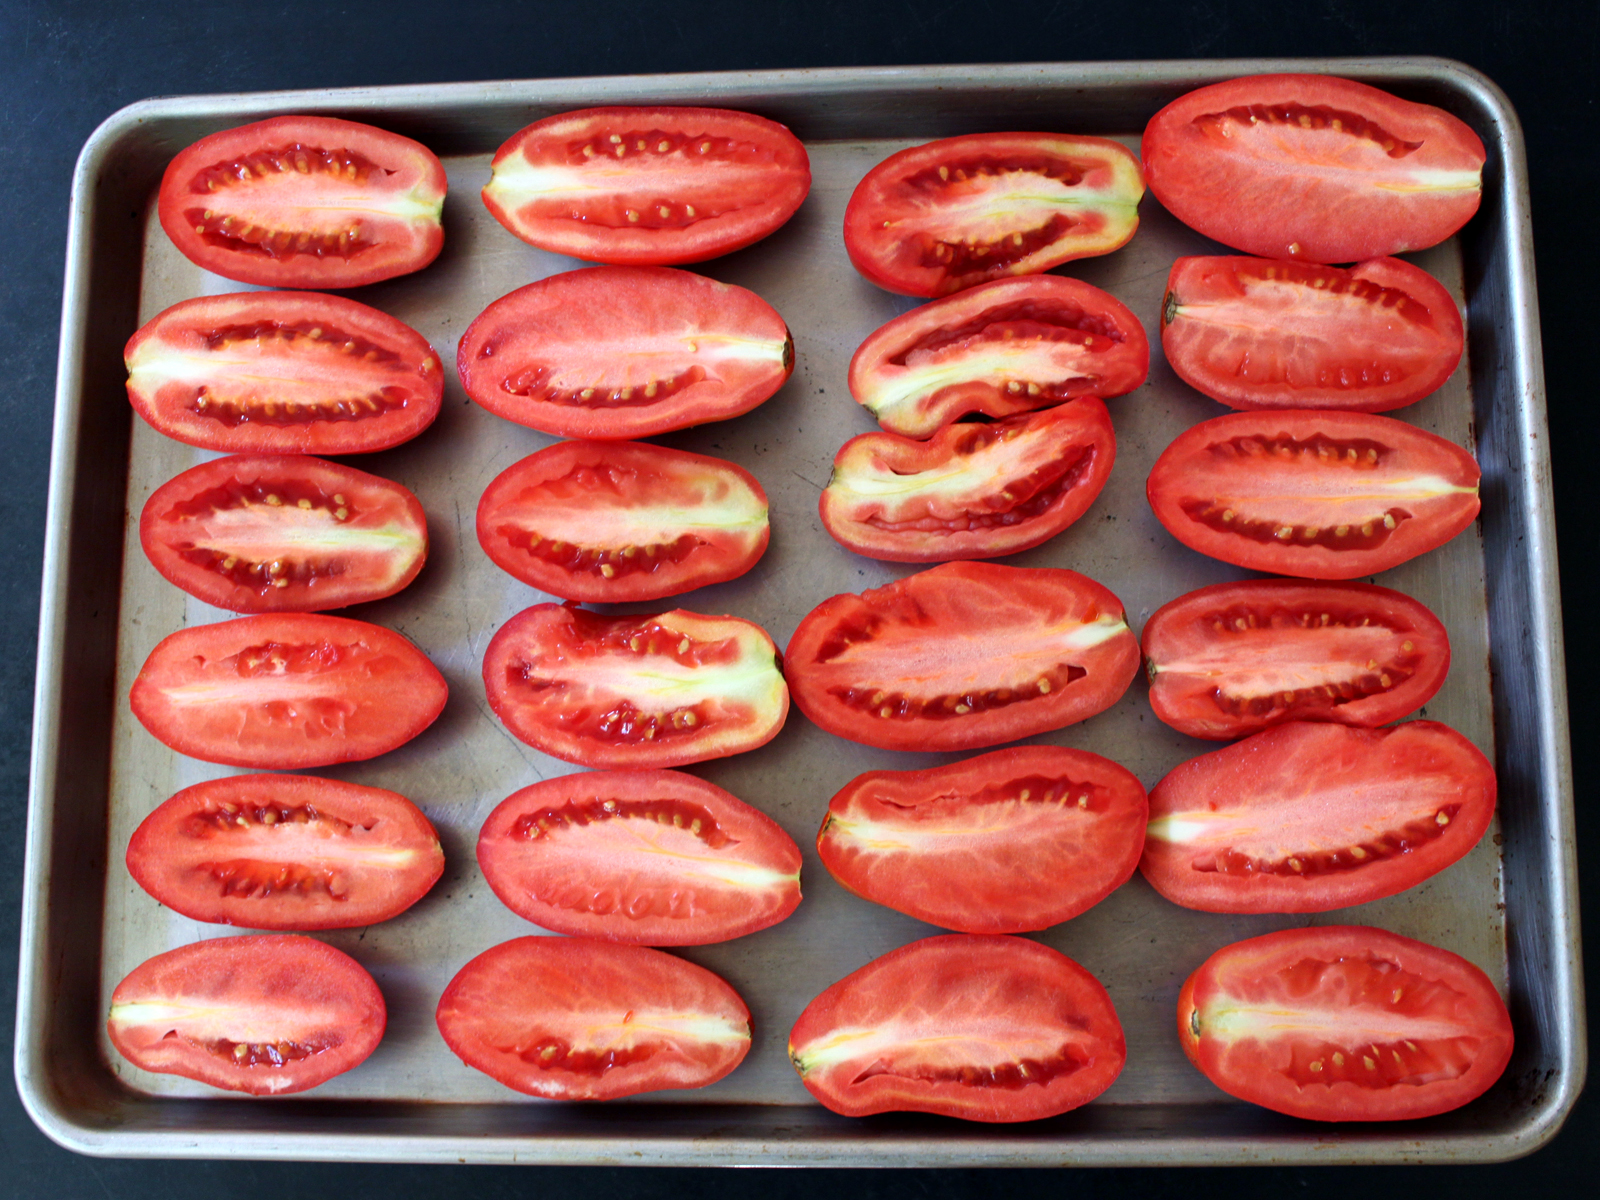 plum tomatoes slow roasted for maximum flavor and to extend summer